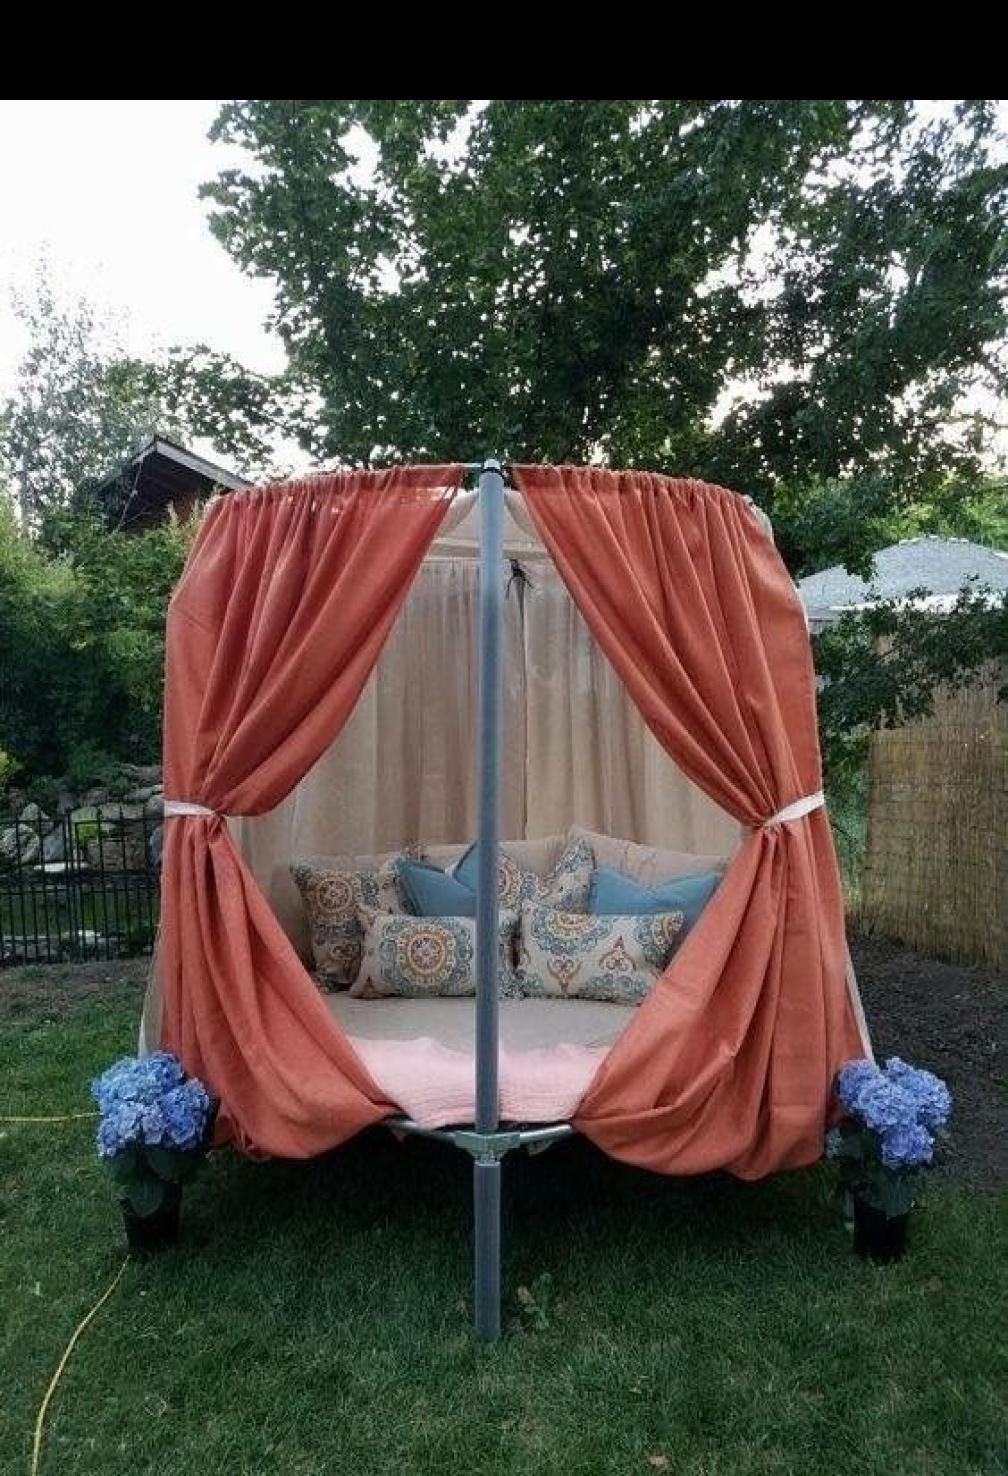 Tlc Engineering Landscape Artists Quotes Artist Photo Flowers Catering Move Furniture Baby Ho In 2020 Trampoline Tent Backyard Trampoline Old Trampoline